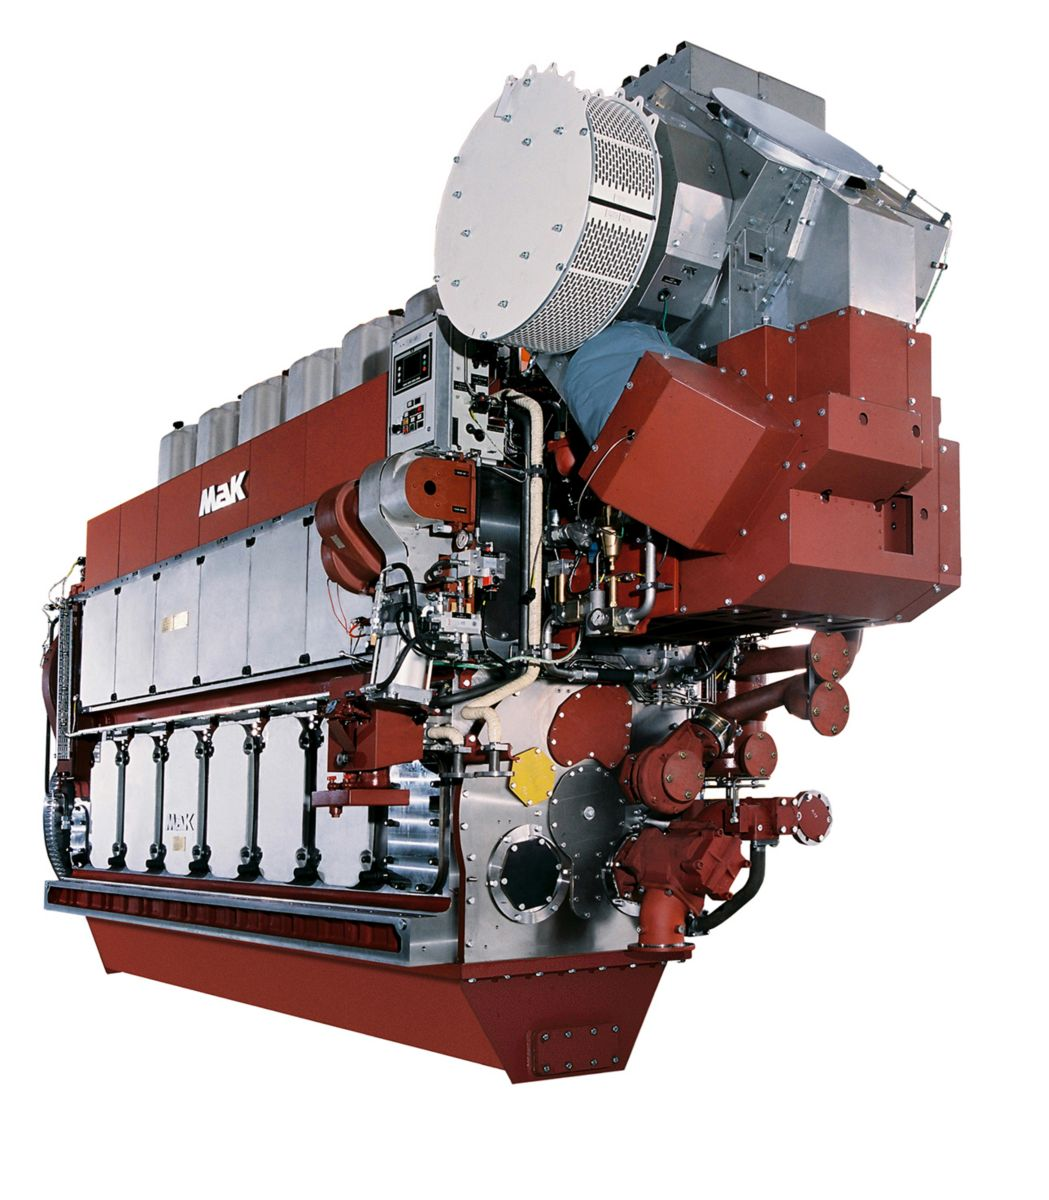 M 32 E Propulsion Engine